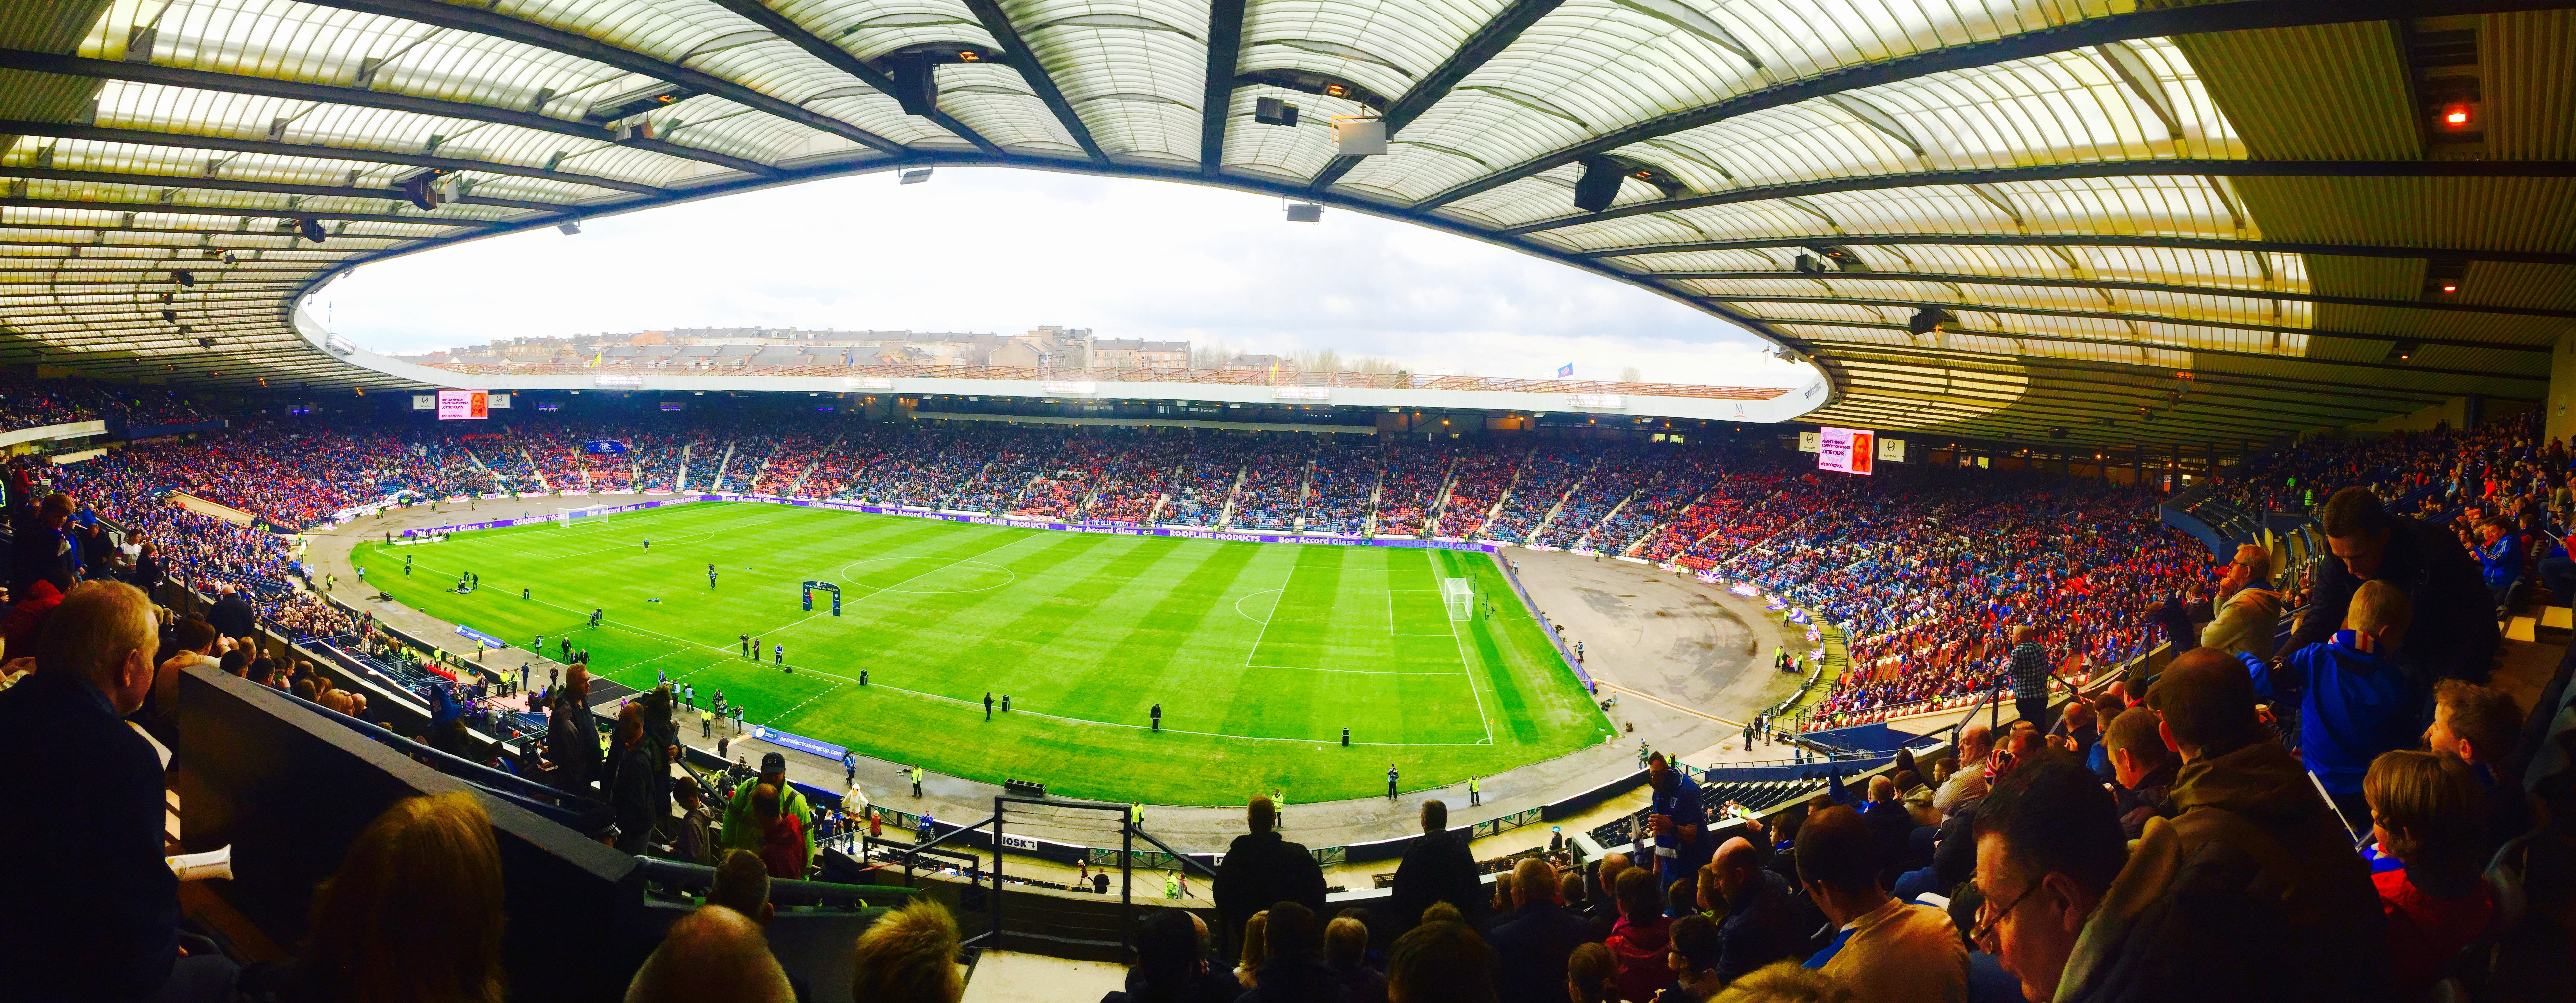 Hampden Park Section K3 Row P Seat 58